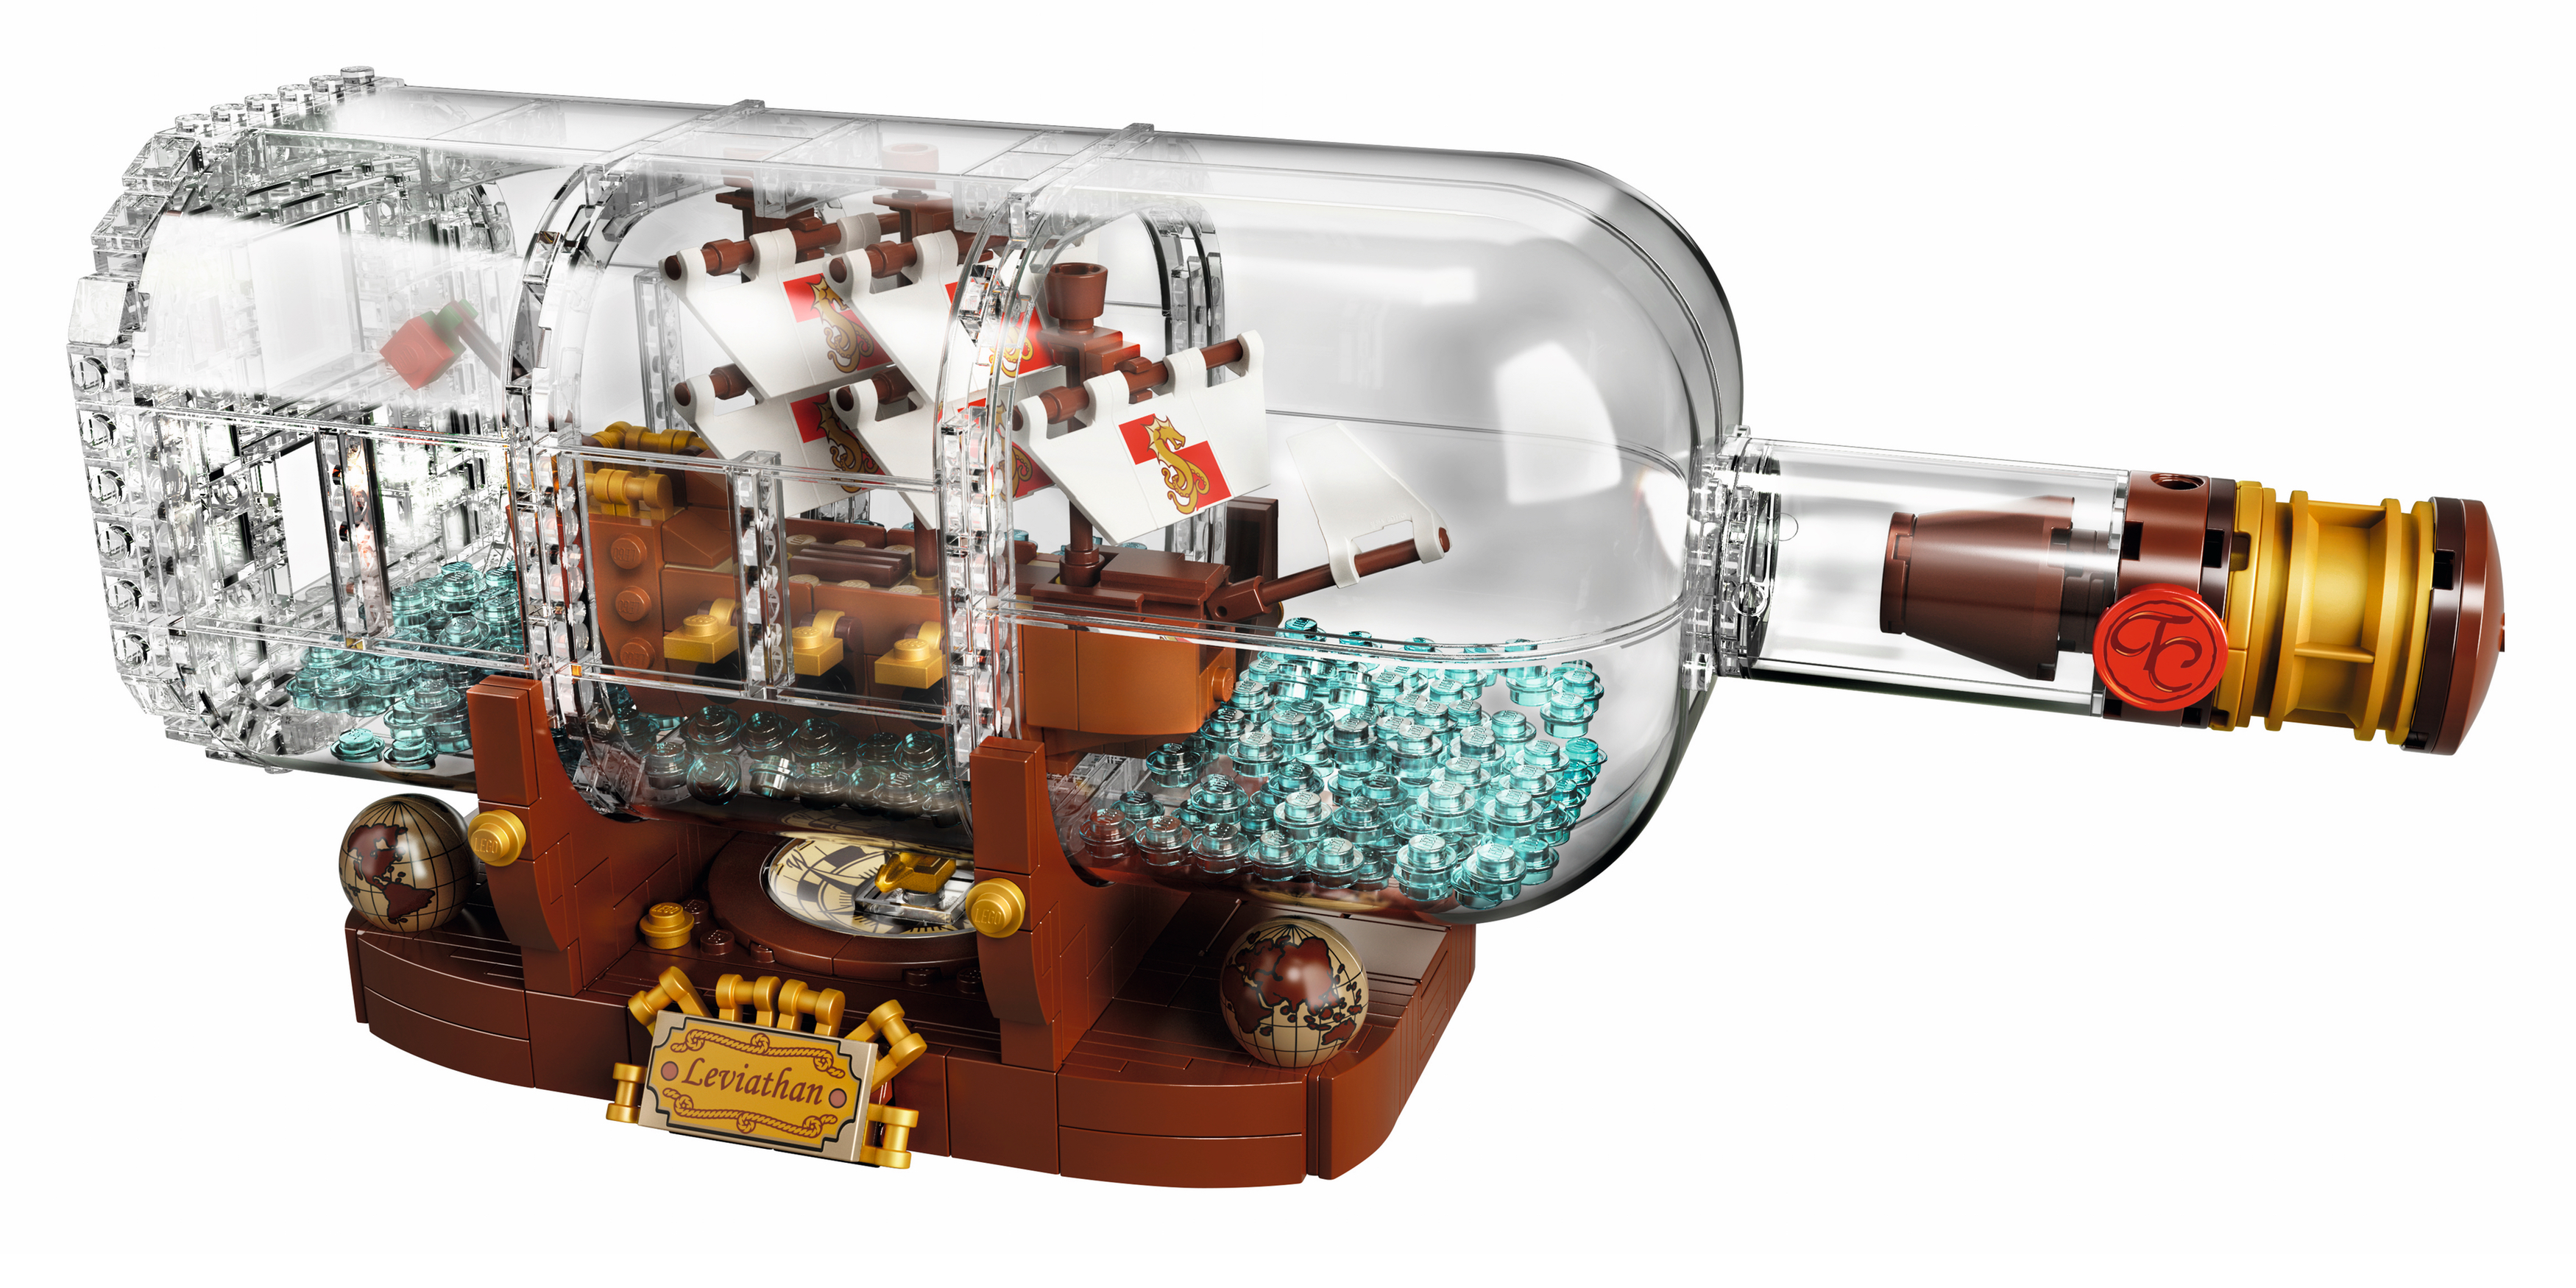 LEGO Ideas' latest 962-piece Ship in a Bottle set washes onto store shelves